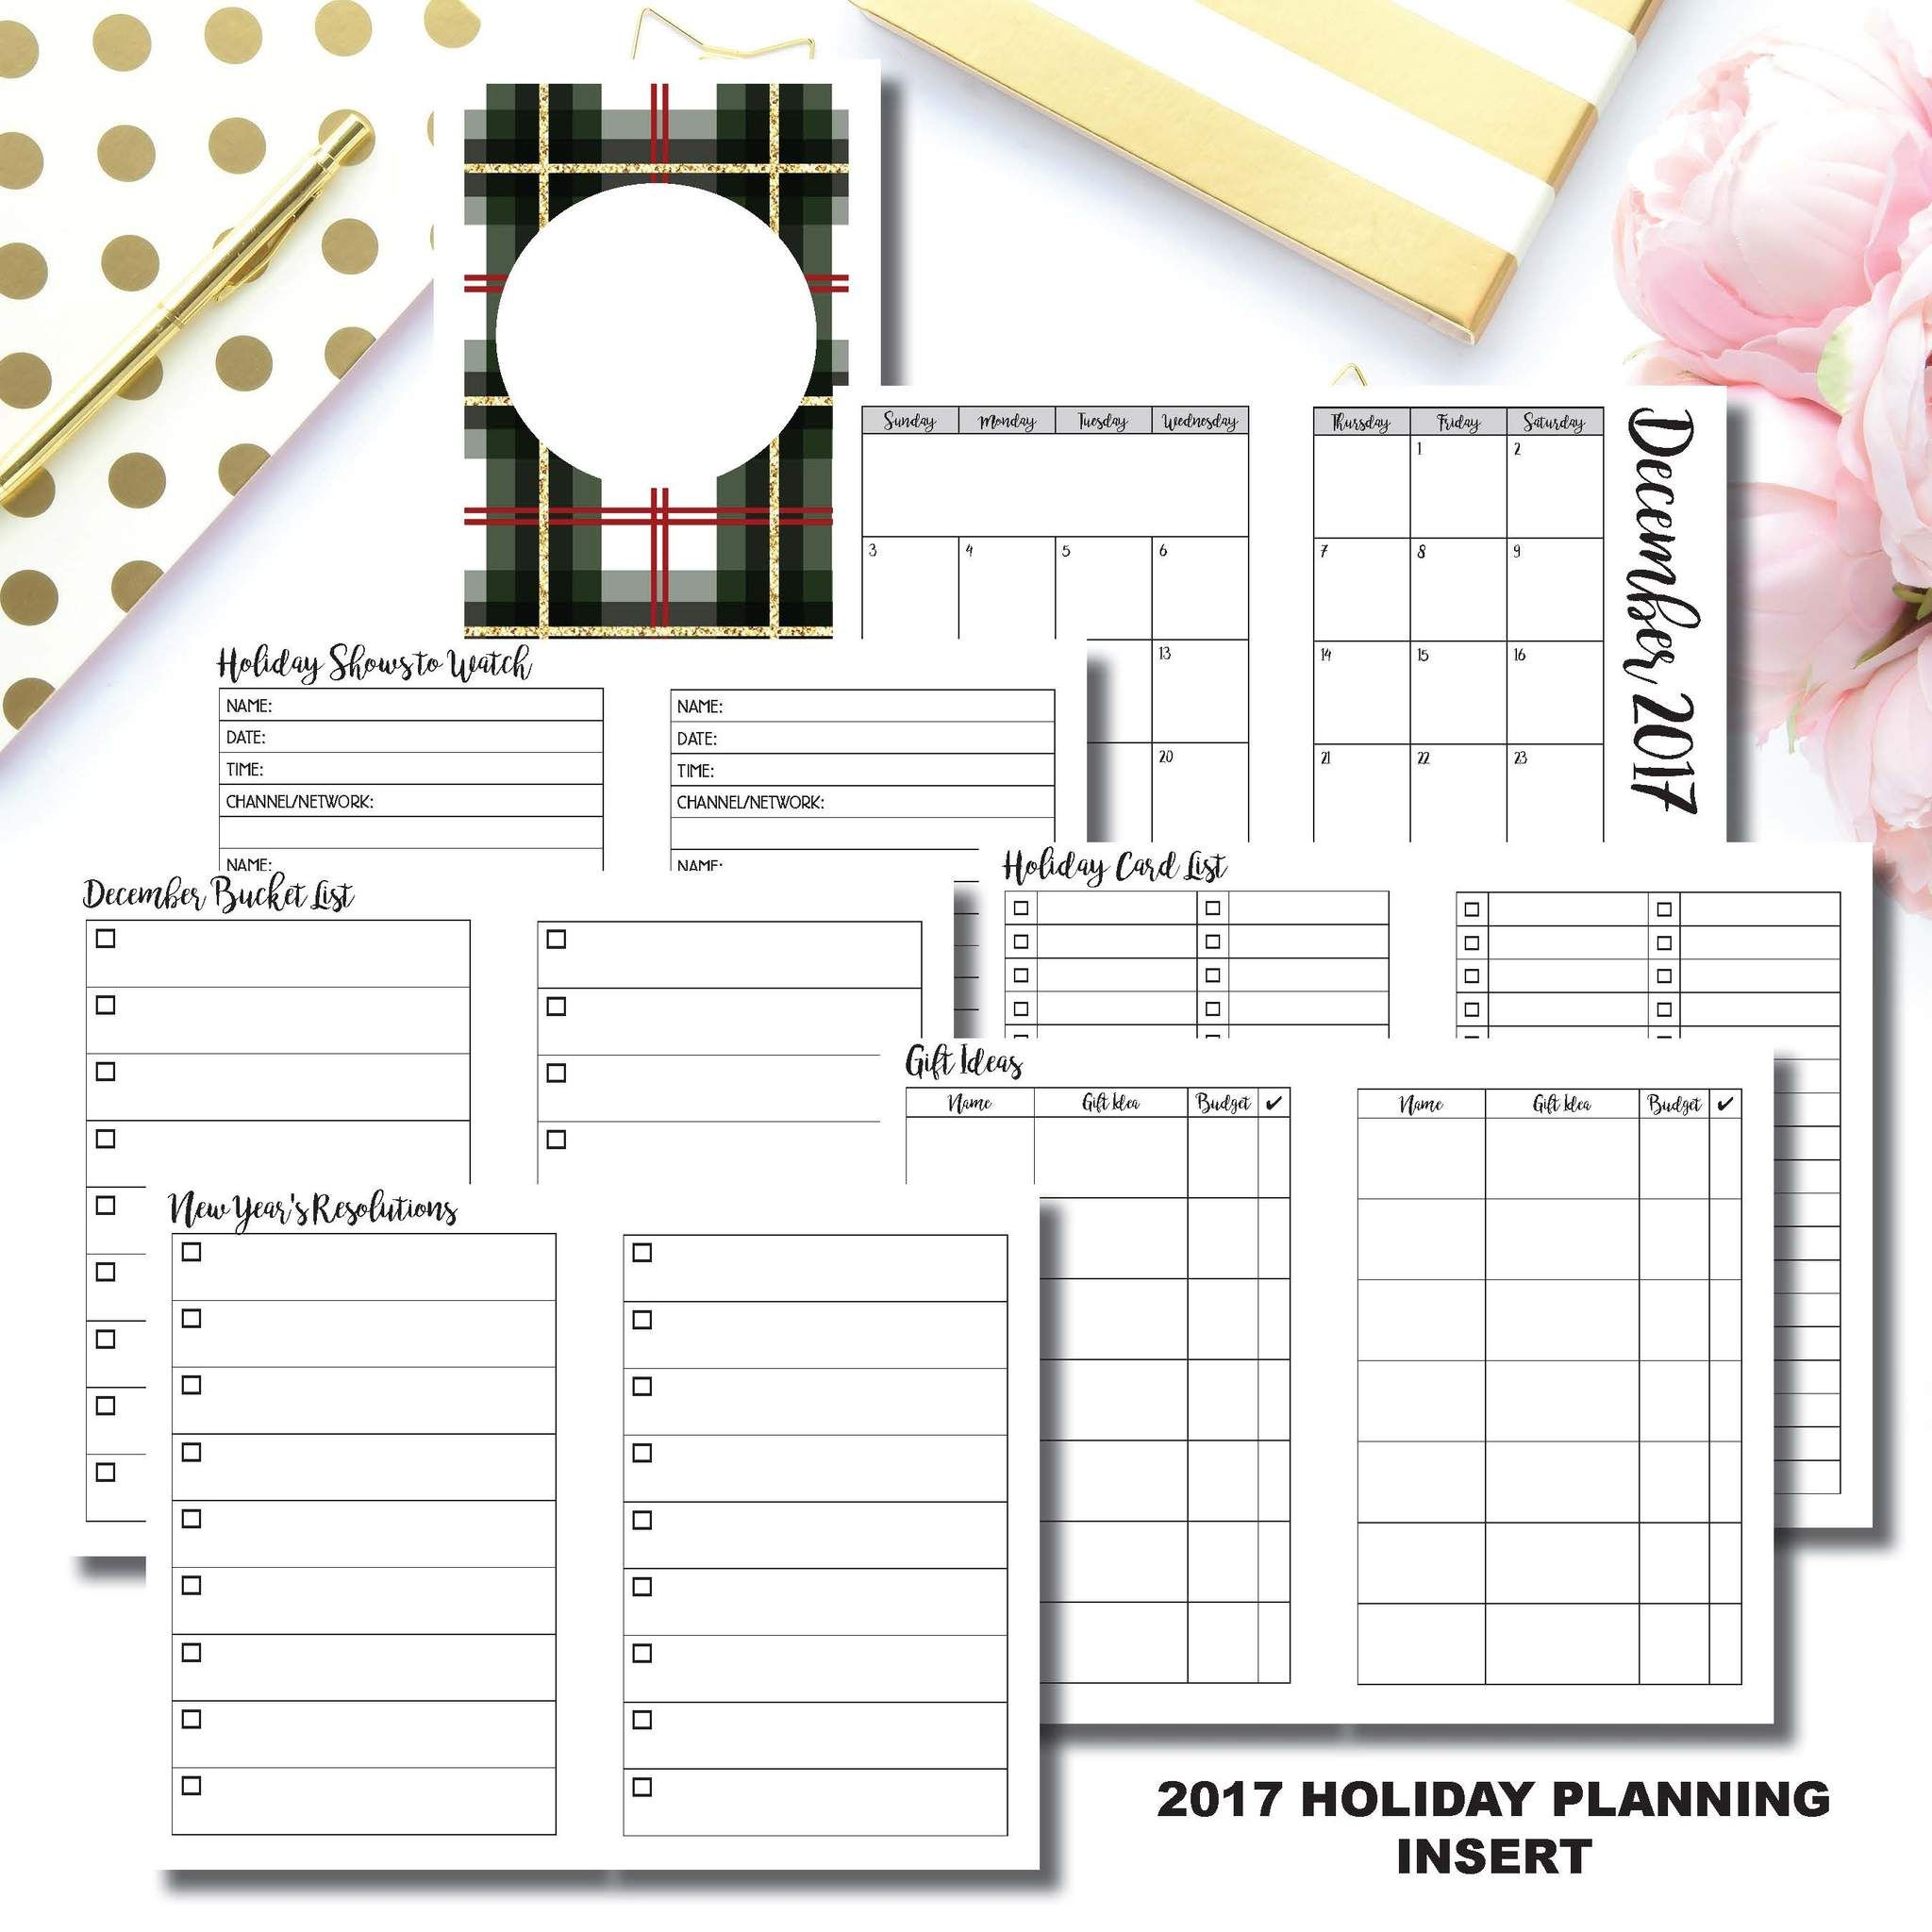 picture about Free Printable B6 Inserts referred to as B6 TN Measurement 2017 Holiday vacation Coming up with Printable Vacationers